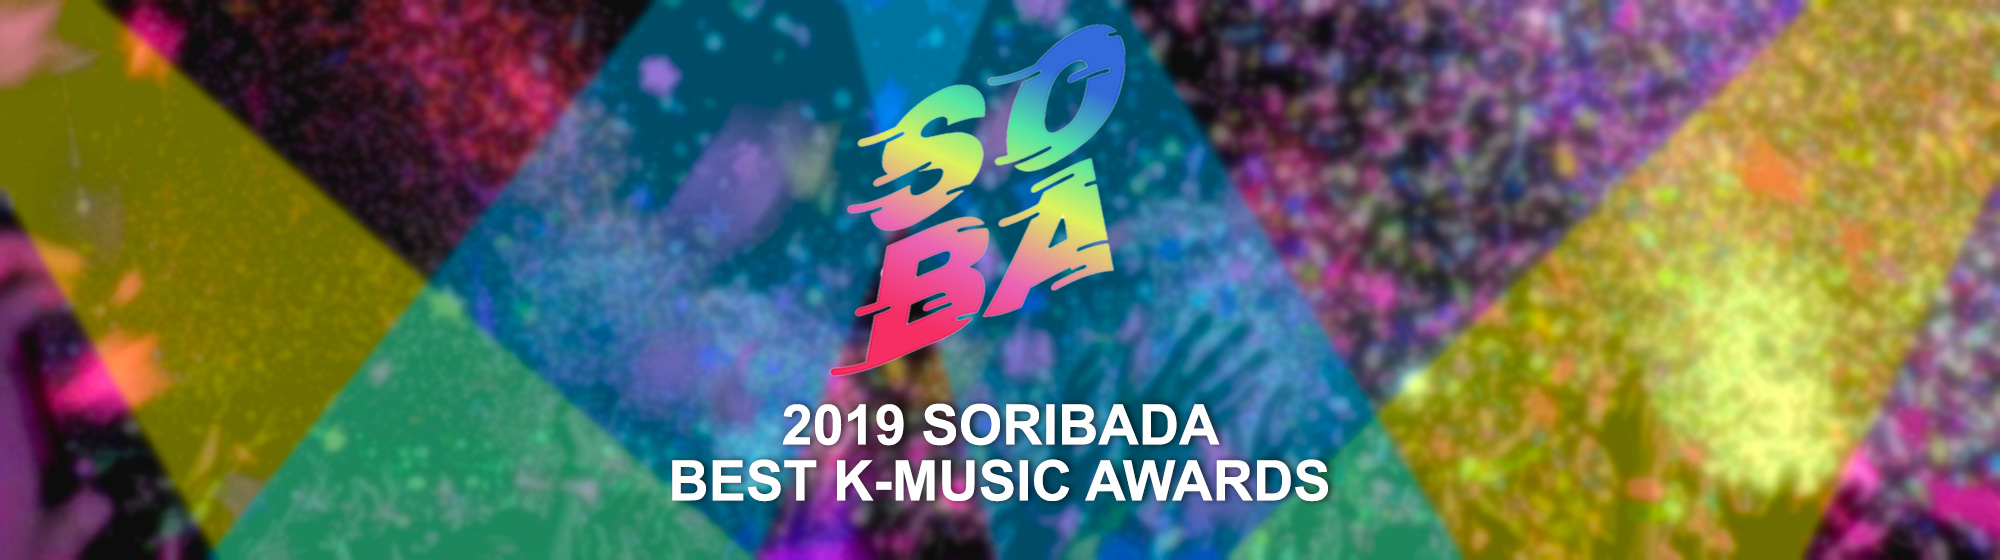 2019 SORIBADA BEST K-Music Awards Kpop Concert (Aug 22-23) | KoreaTravelEasy